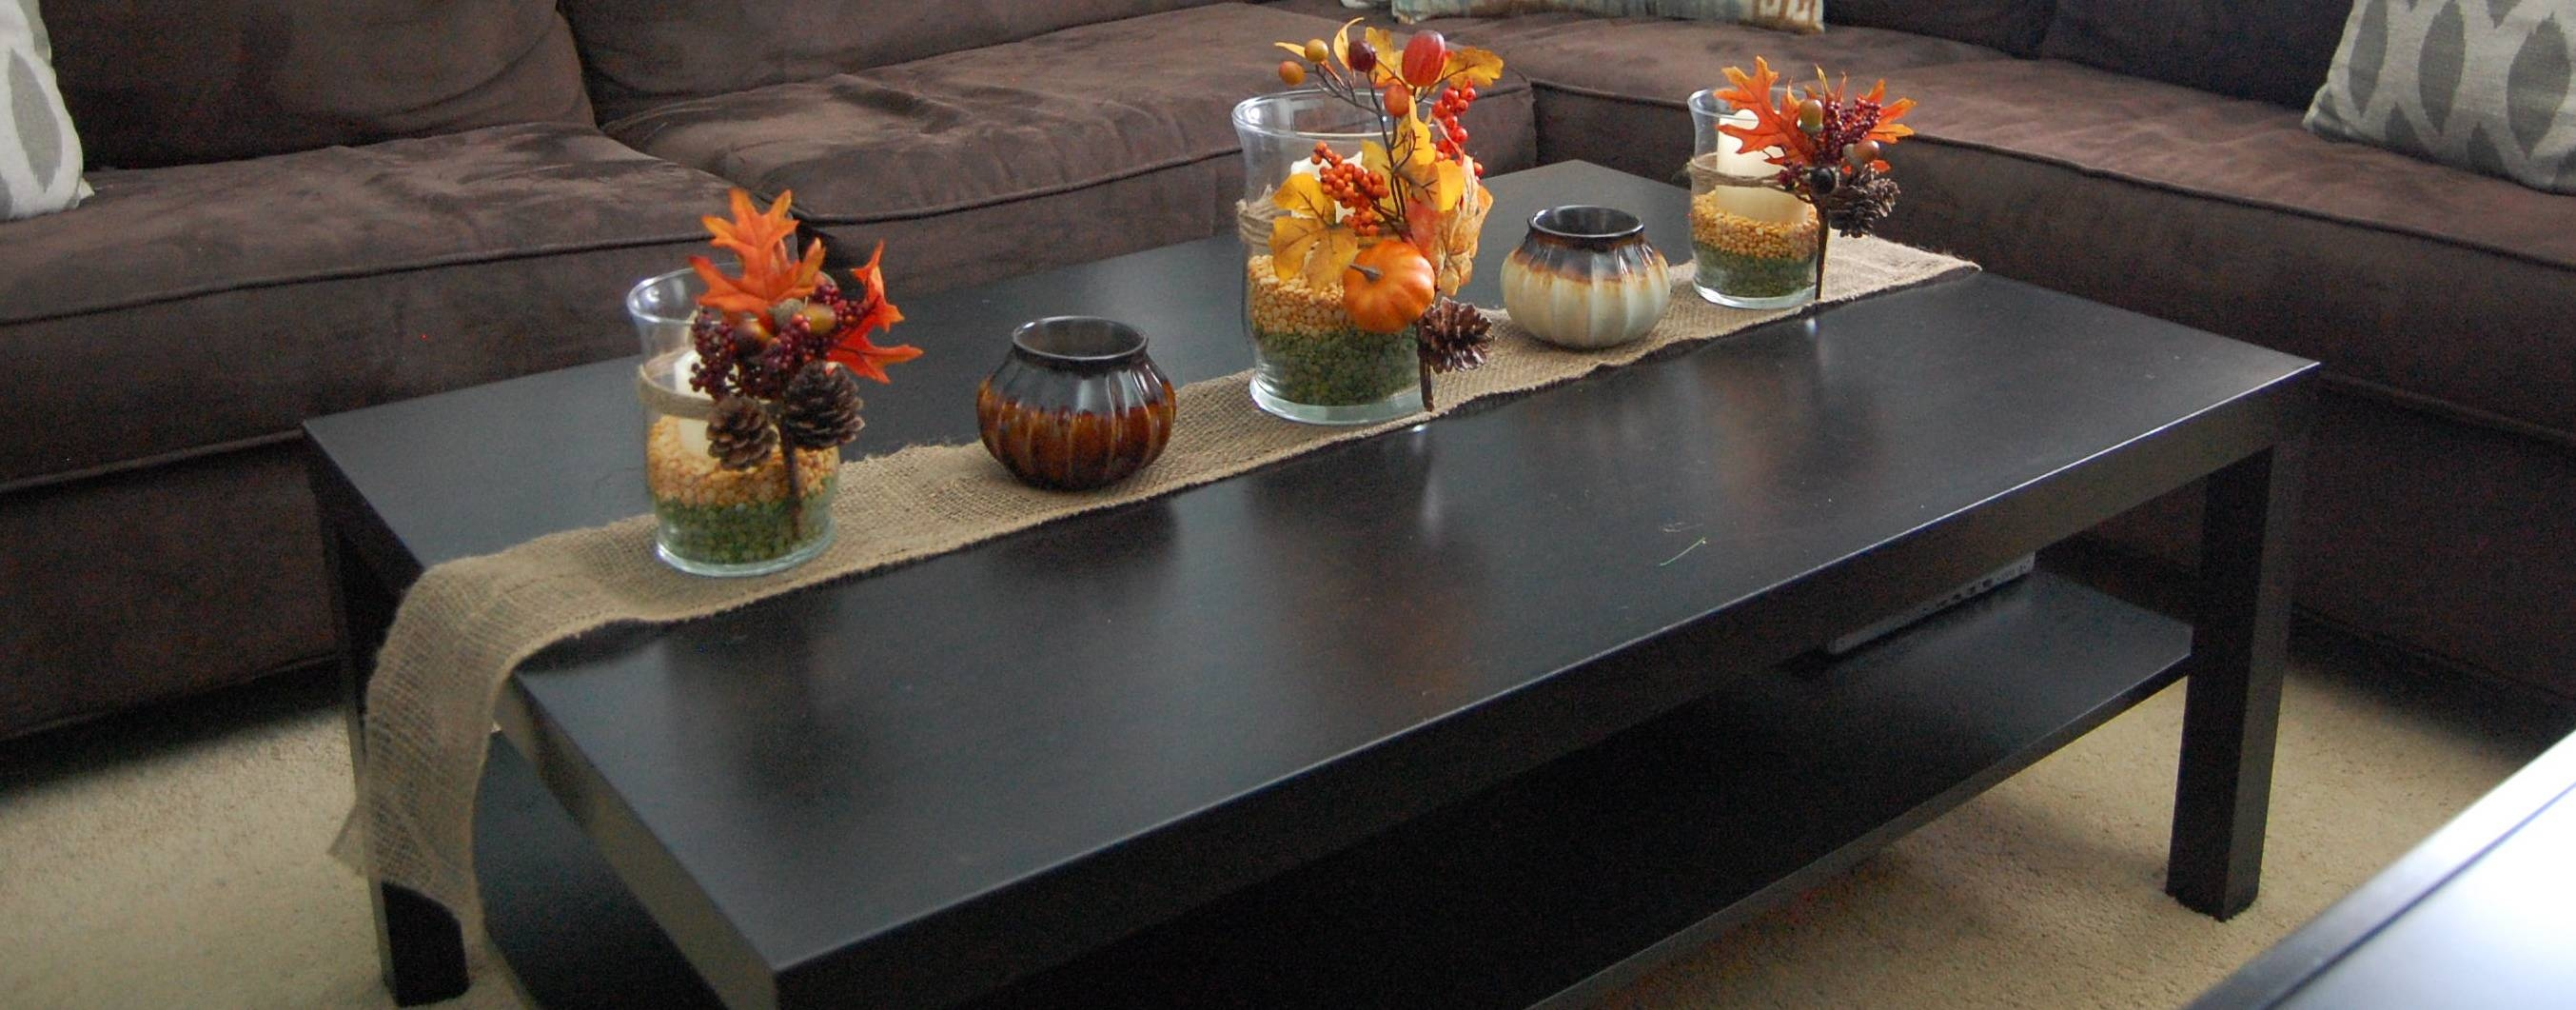 Ad Best Coffee Table Decor Ideas - Amys Office with Ethnic Coffee Tables (Image 4 of 30)